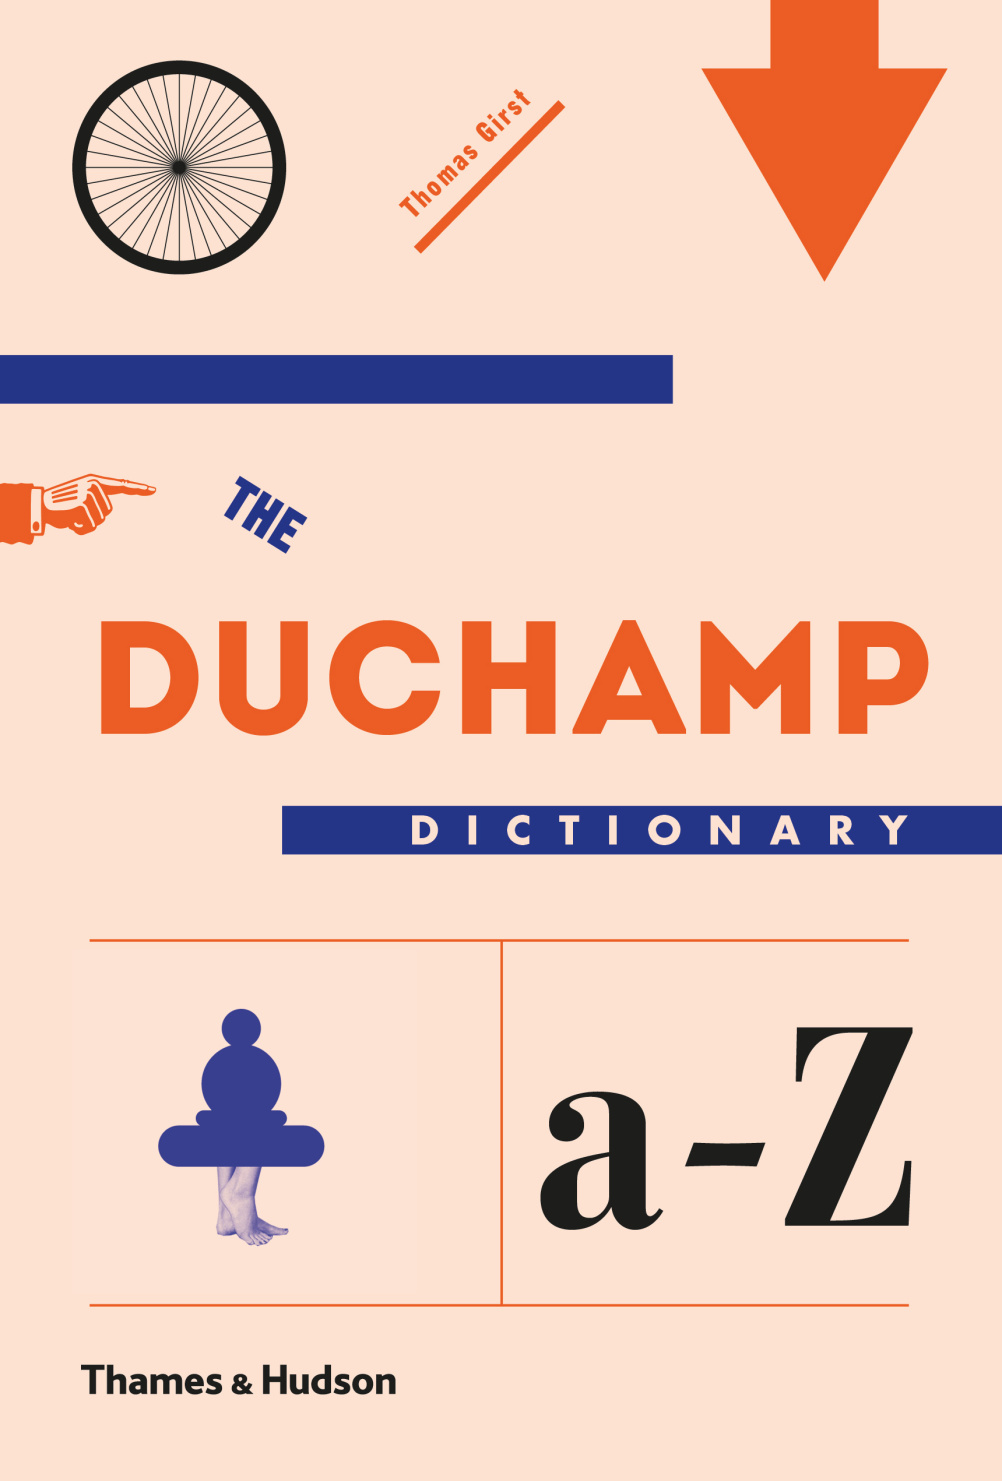 The Duchamp Dictionary, designed by Heretic